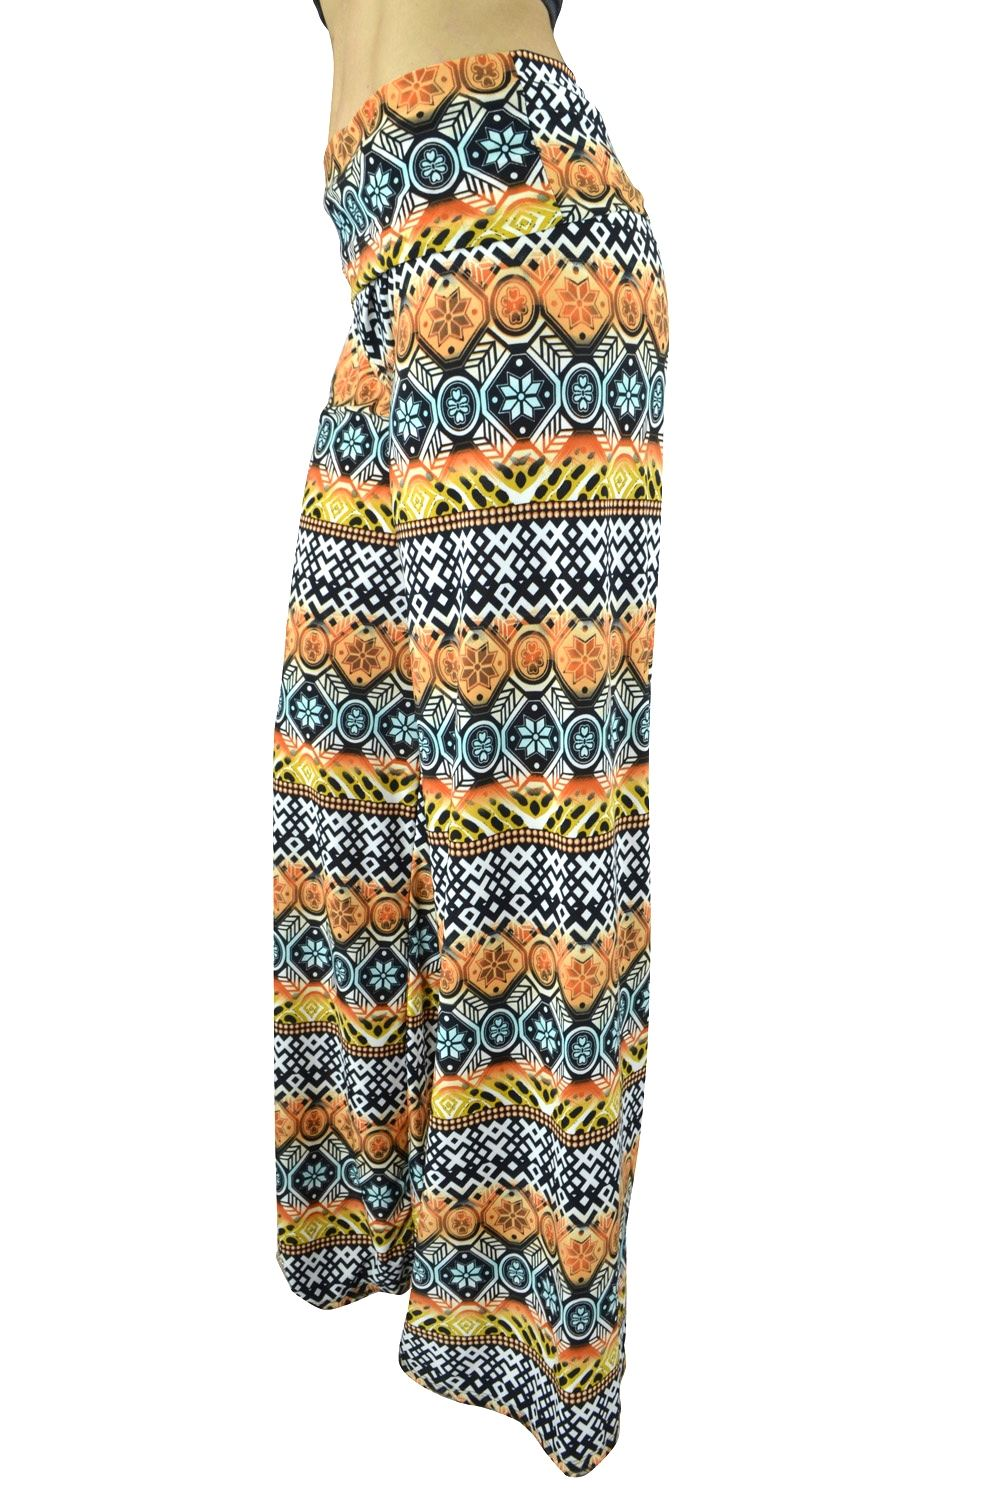 Belle Donne Women Palazzo Pants Chevron Aztec Tribal HighWaist Pants - Black/Medium